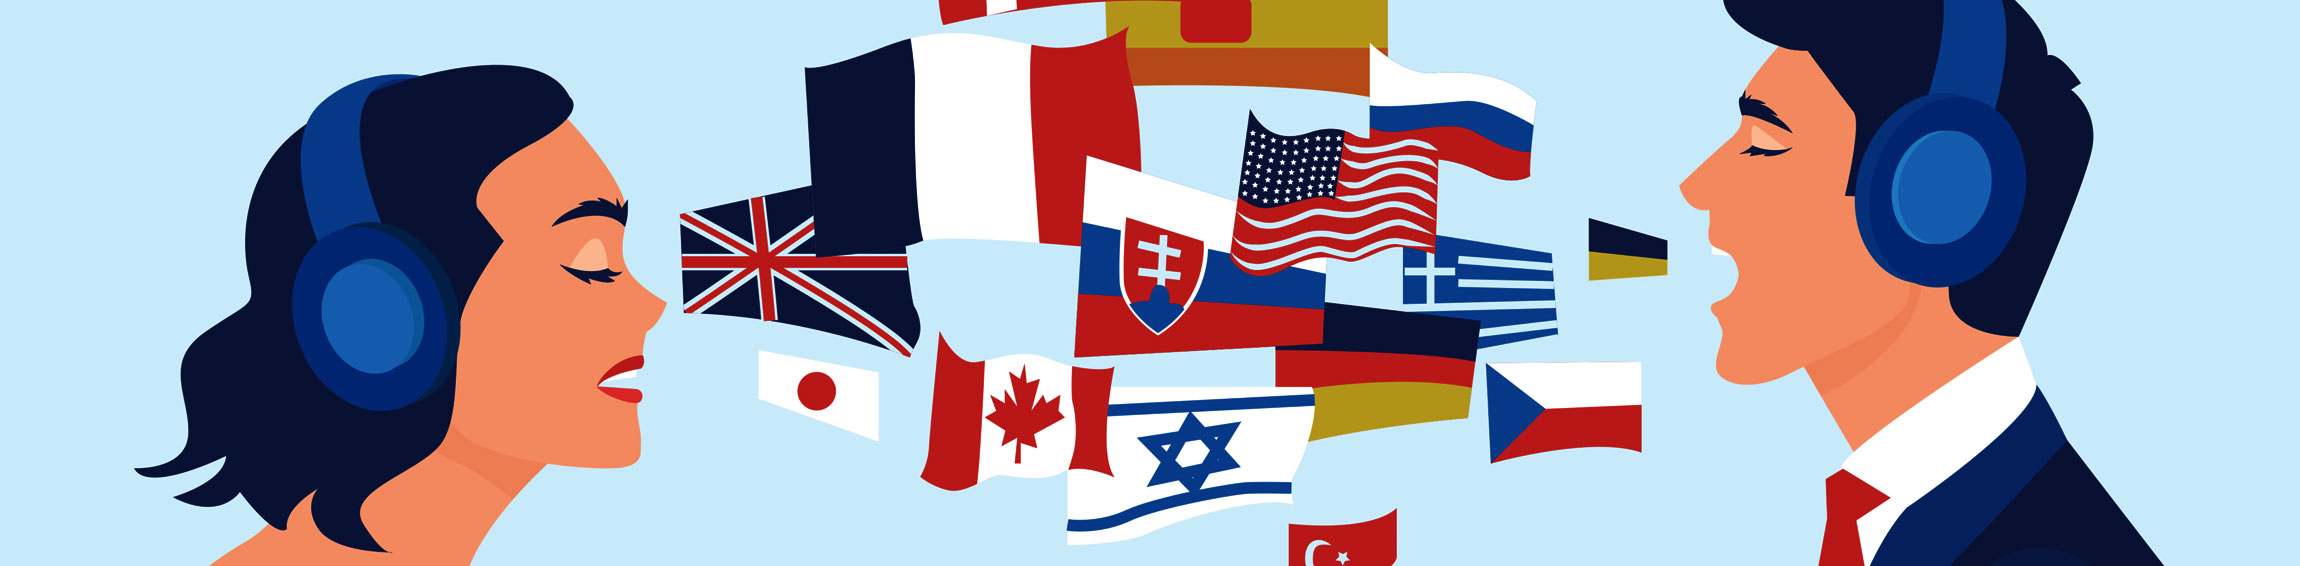 Multilingual services: Why cultural competency matters